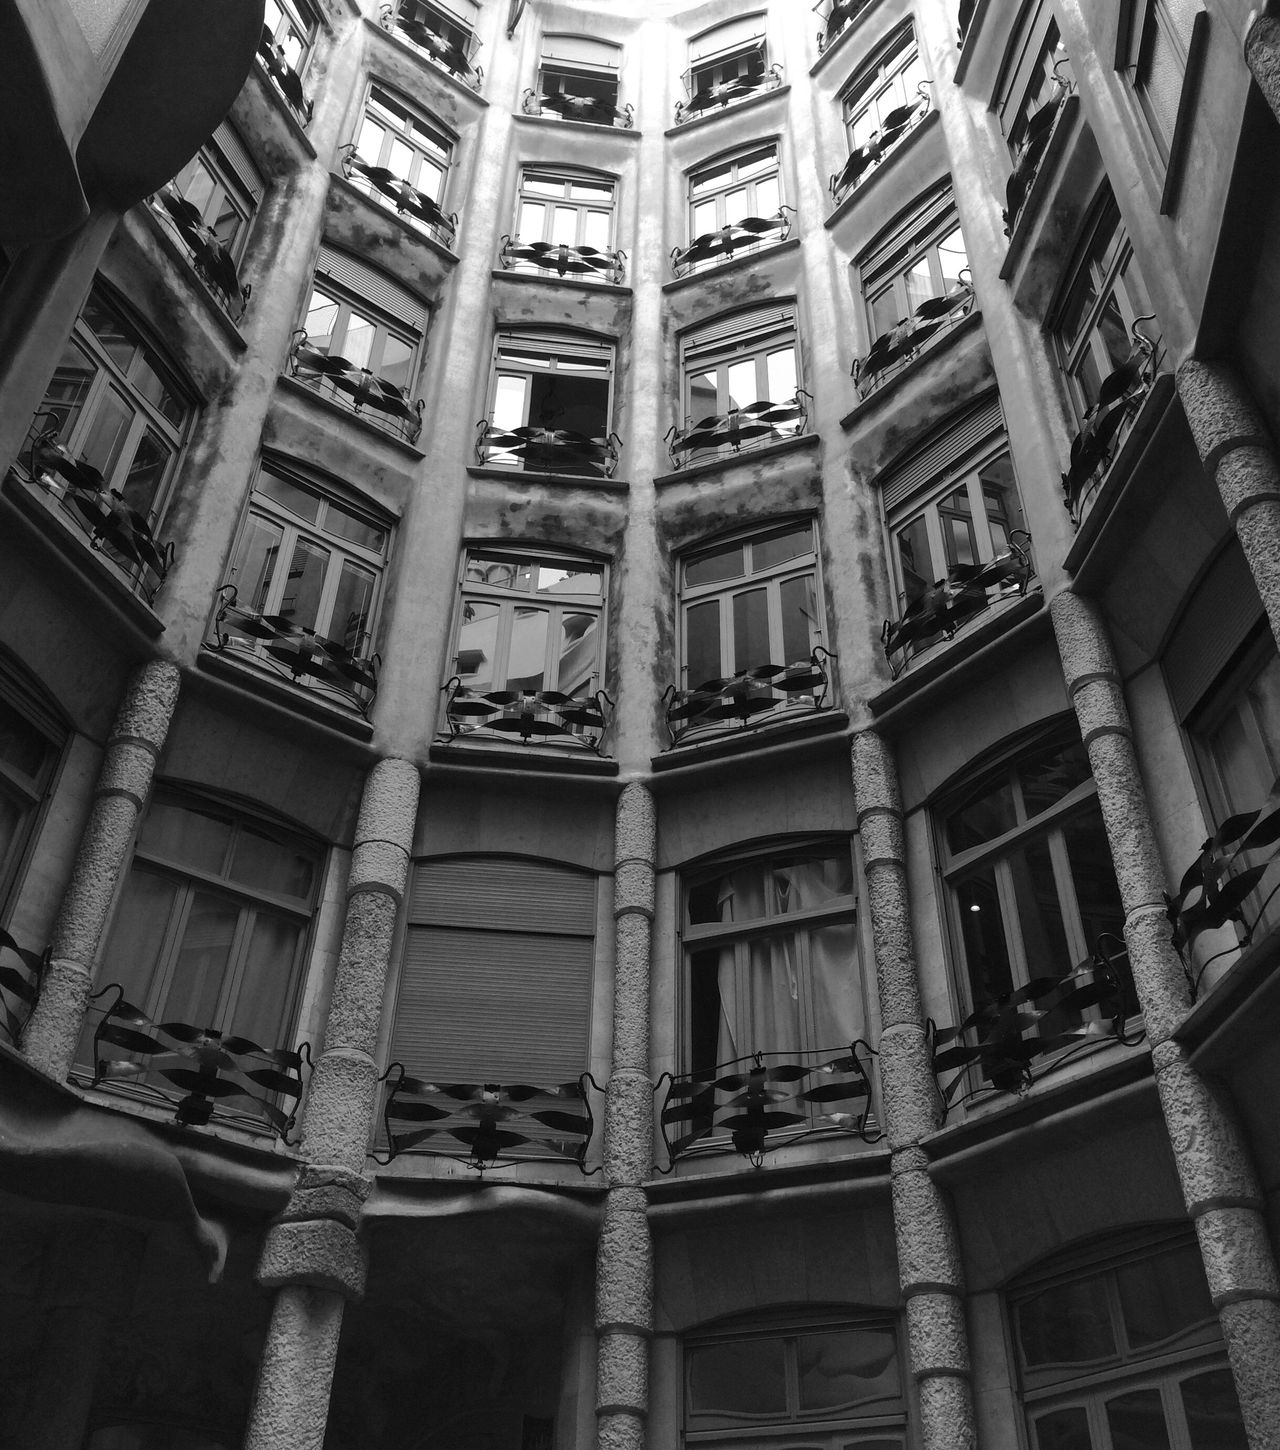 Inner Court Inner Courtyard Inner Yard Internal Windows Building Architecture Gaudi SPAIN Barcelona Black And White Black & White Vintage Famous Place